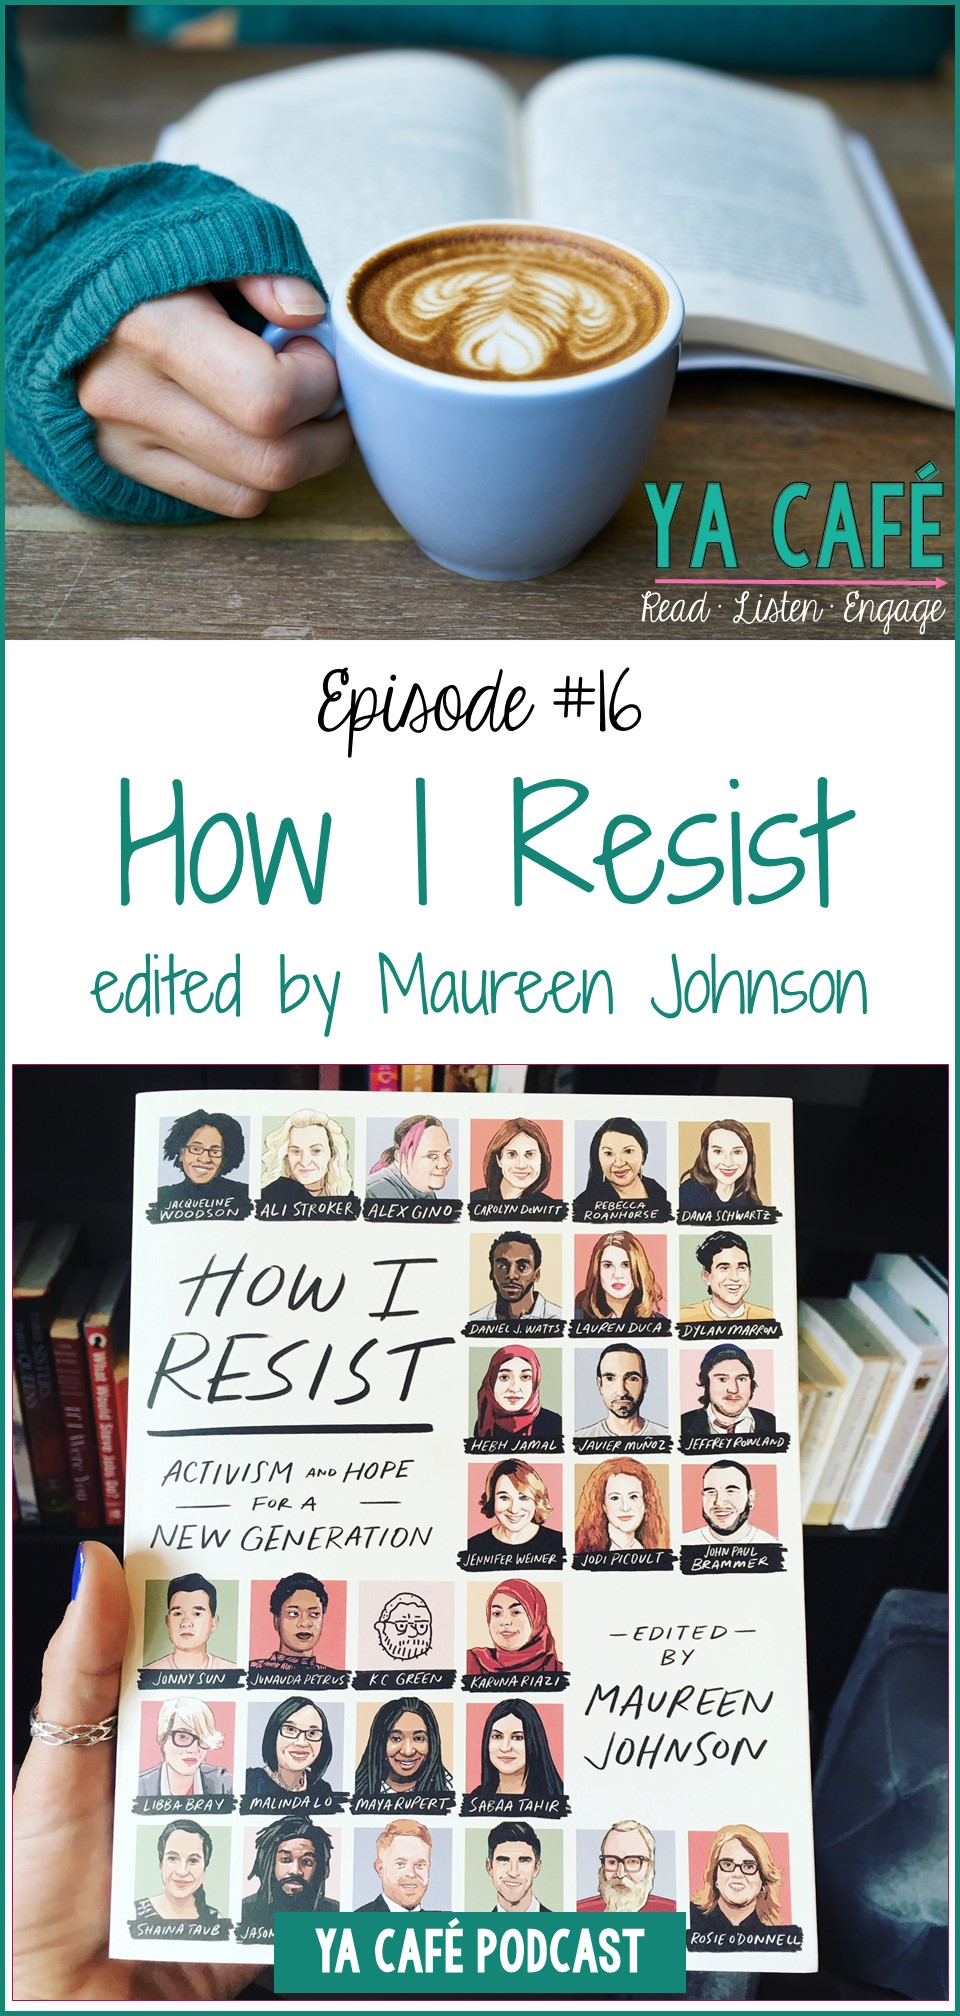 16 How I Resist Maureen Johnson